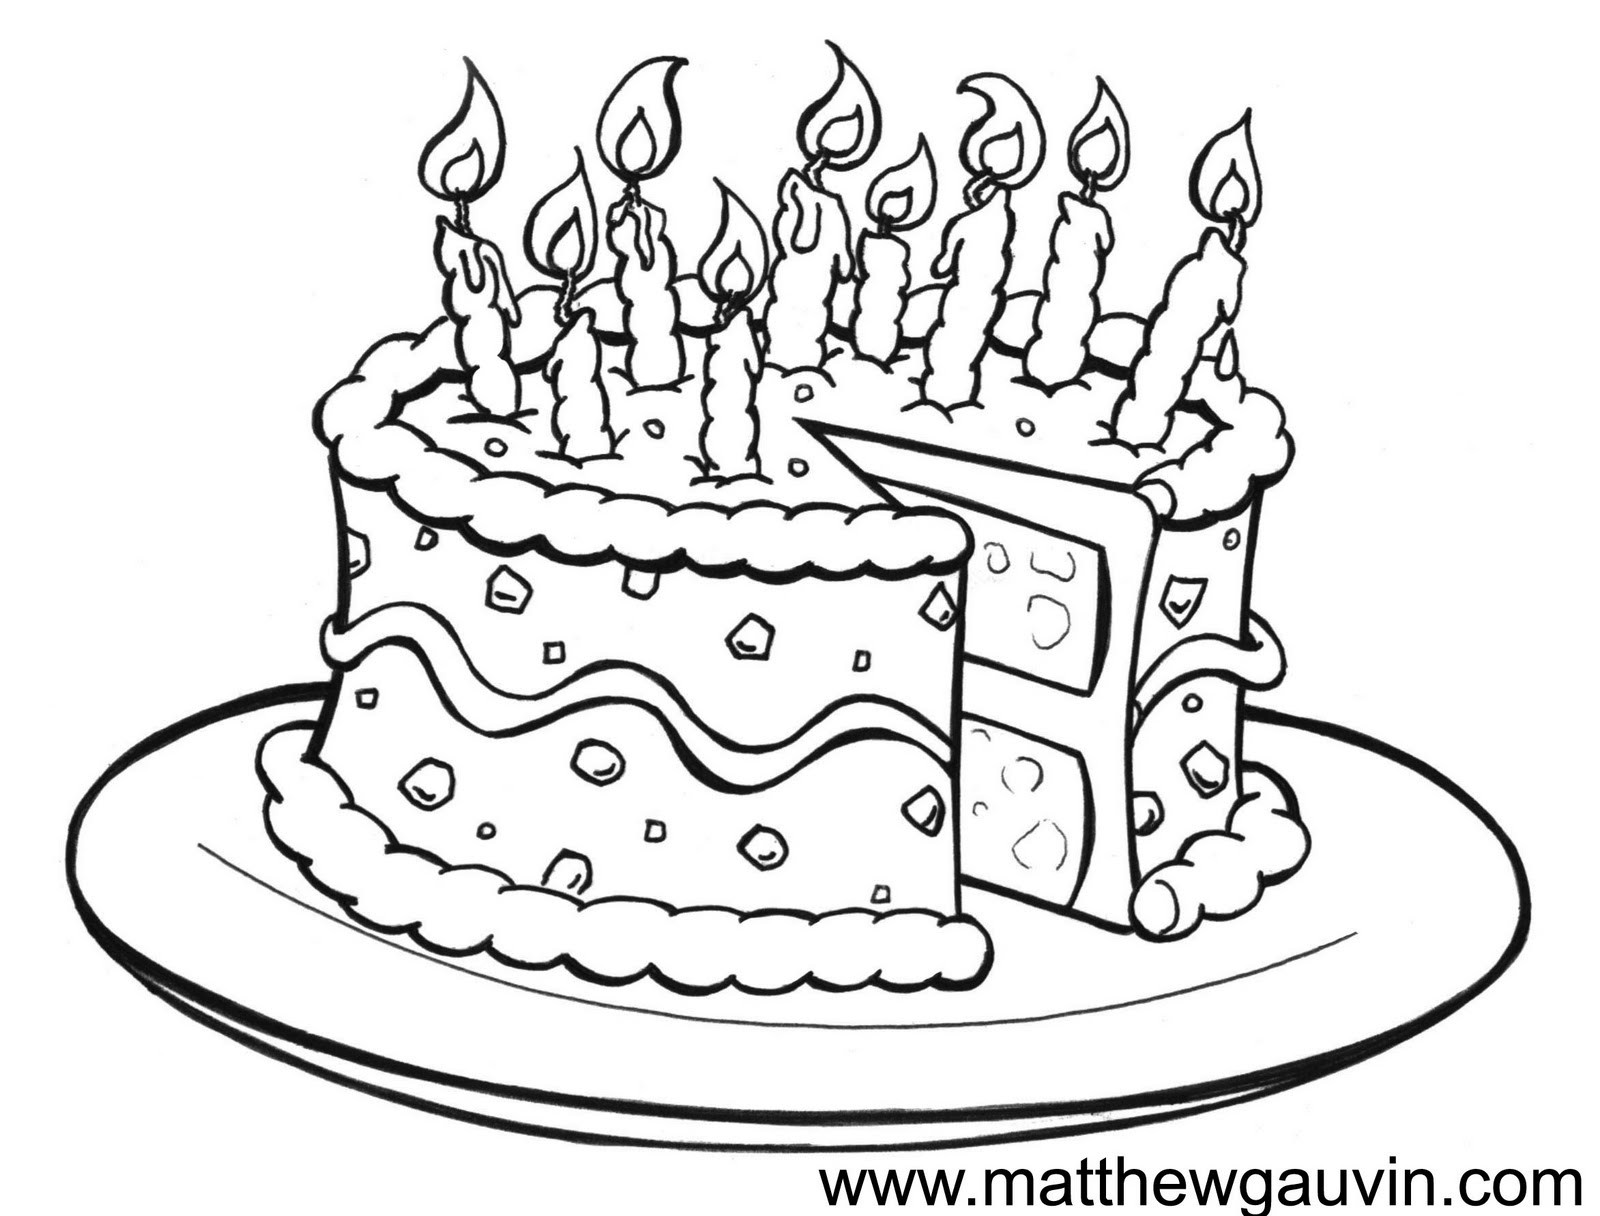 happy birthday drawing ideas ; birthday-cake-drawing-luxury-birthday-drawings-design-of-birthday-cake-drawing